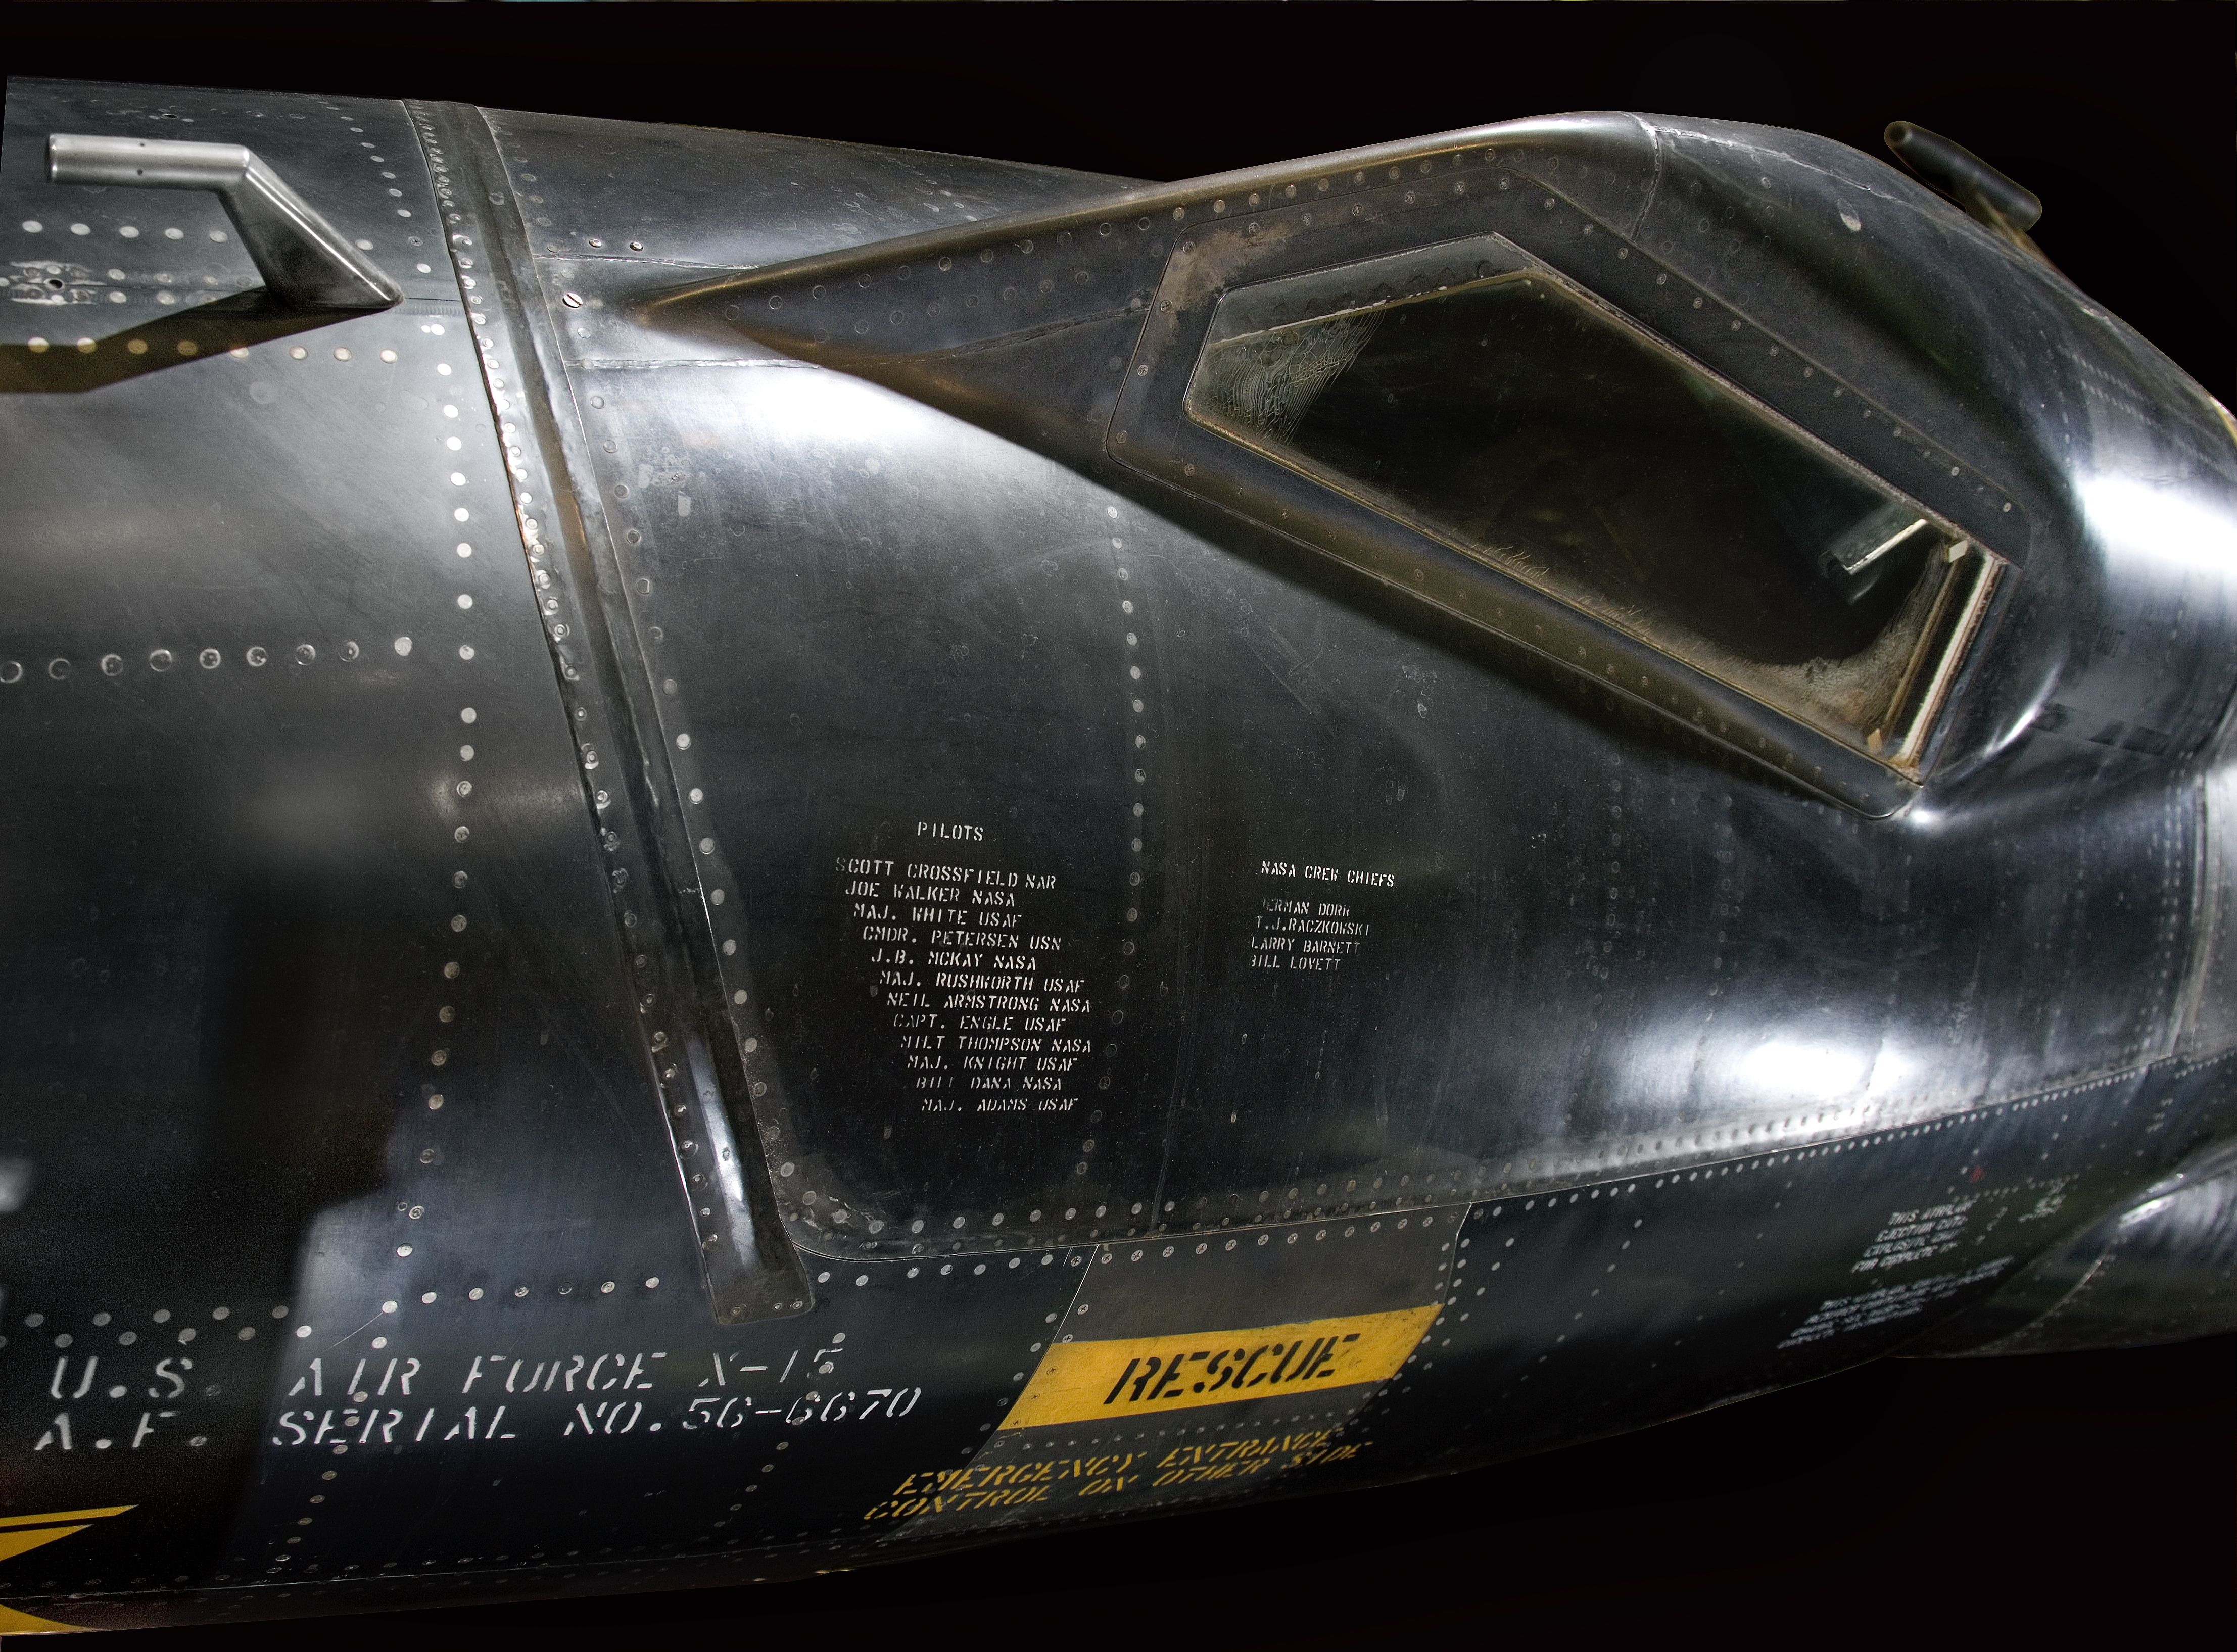 The X-15's distinctive, heat-resistant exterior